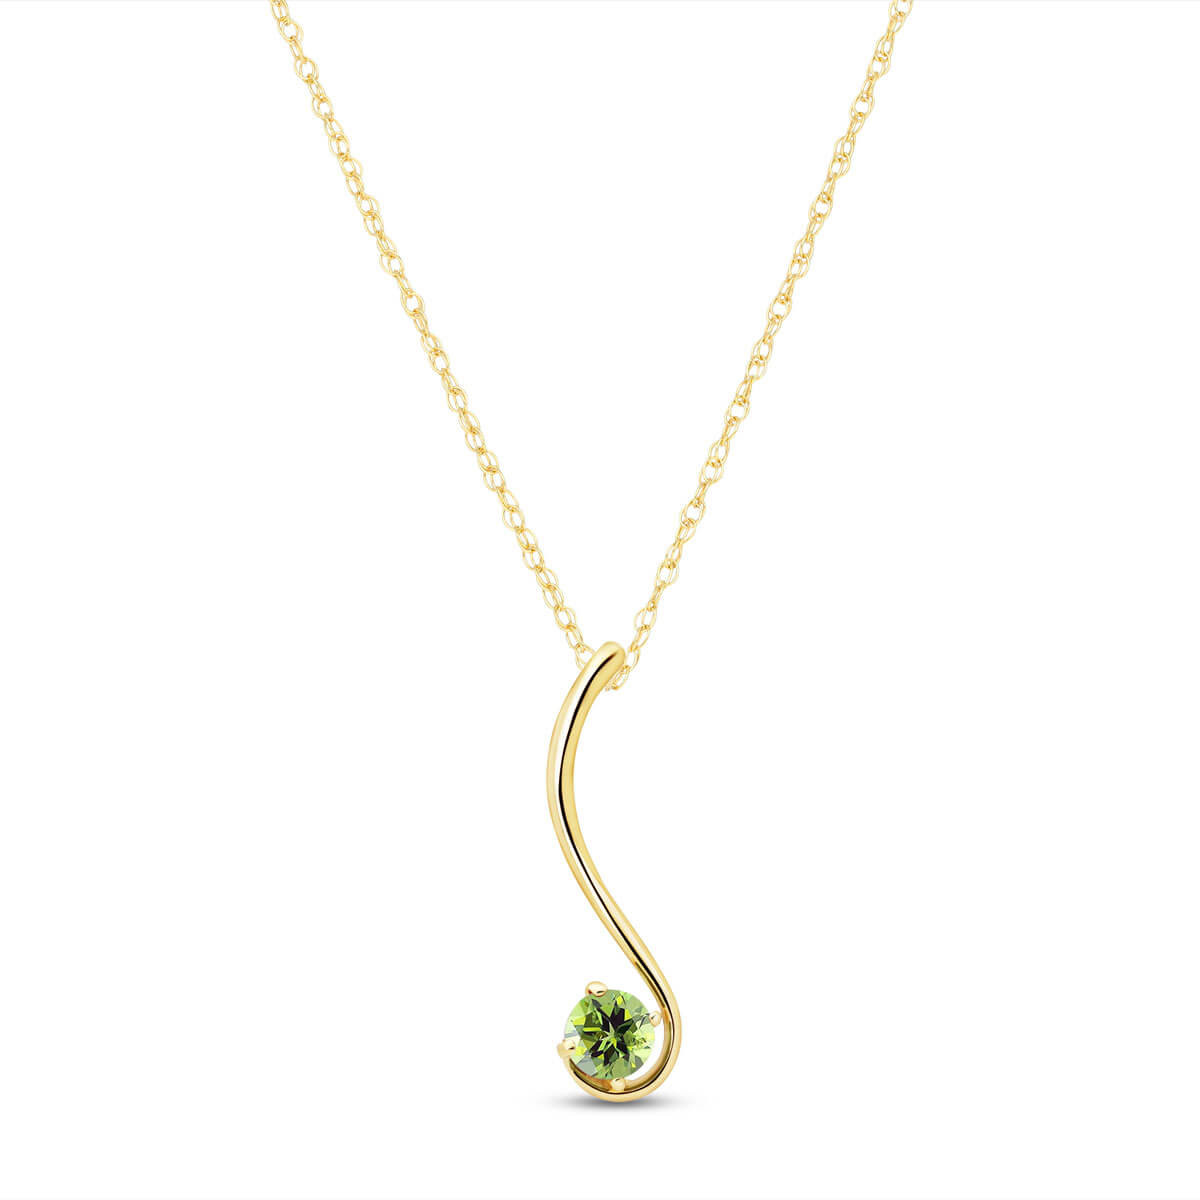 Peridot Swish Pendant Necklace 0.55 ct in 9ct Gold